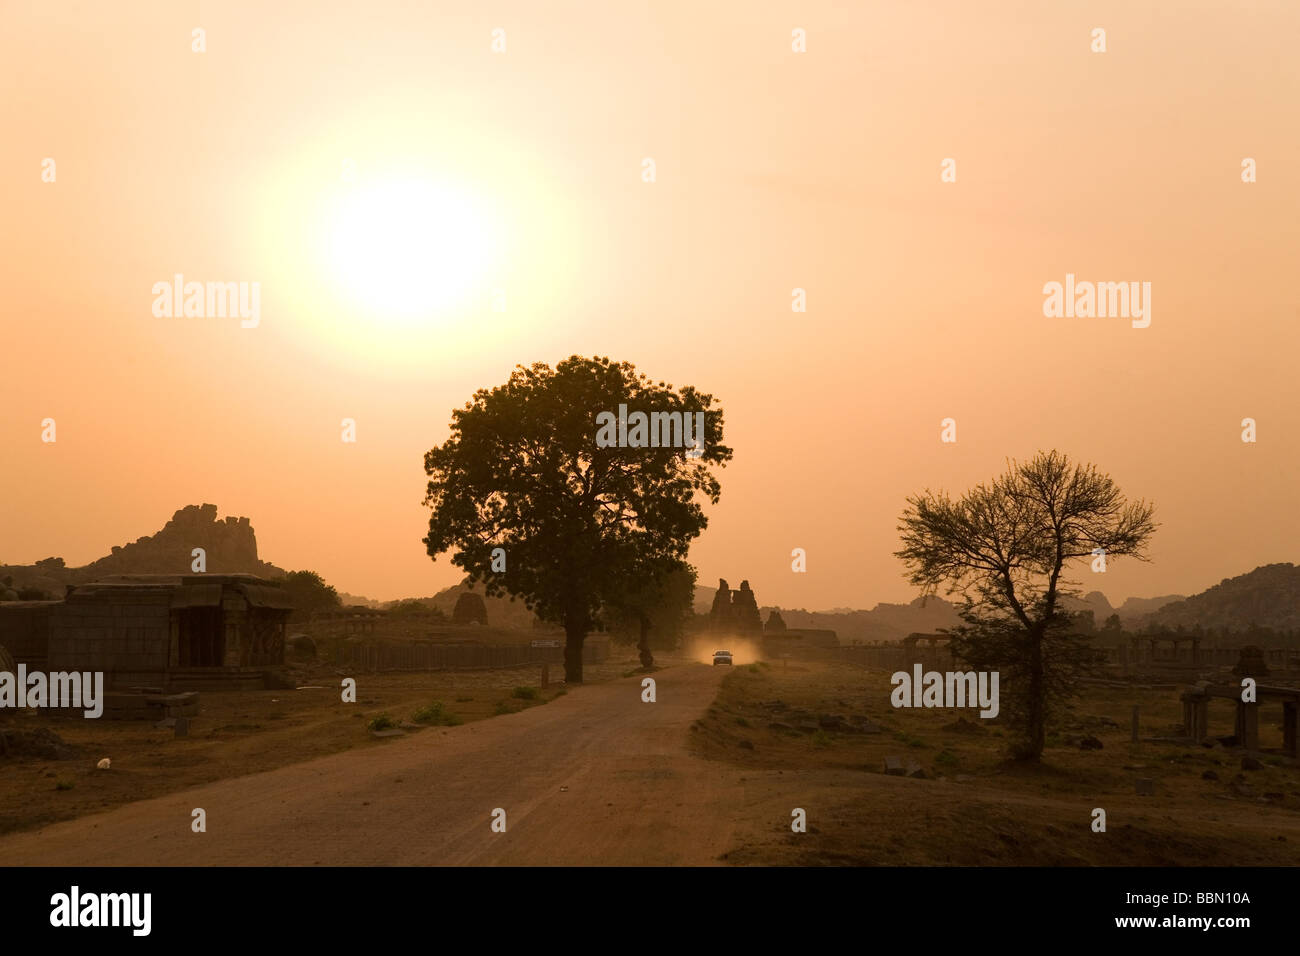 Sunset over a dusty road which runs towards the Vittala (Vitthala) Temple in Hampi, India. - Stock Image